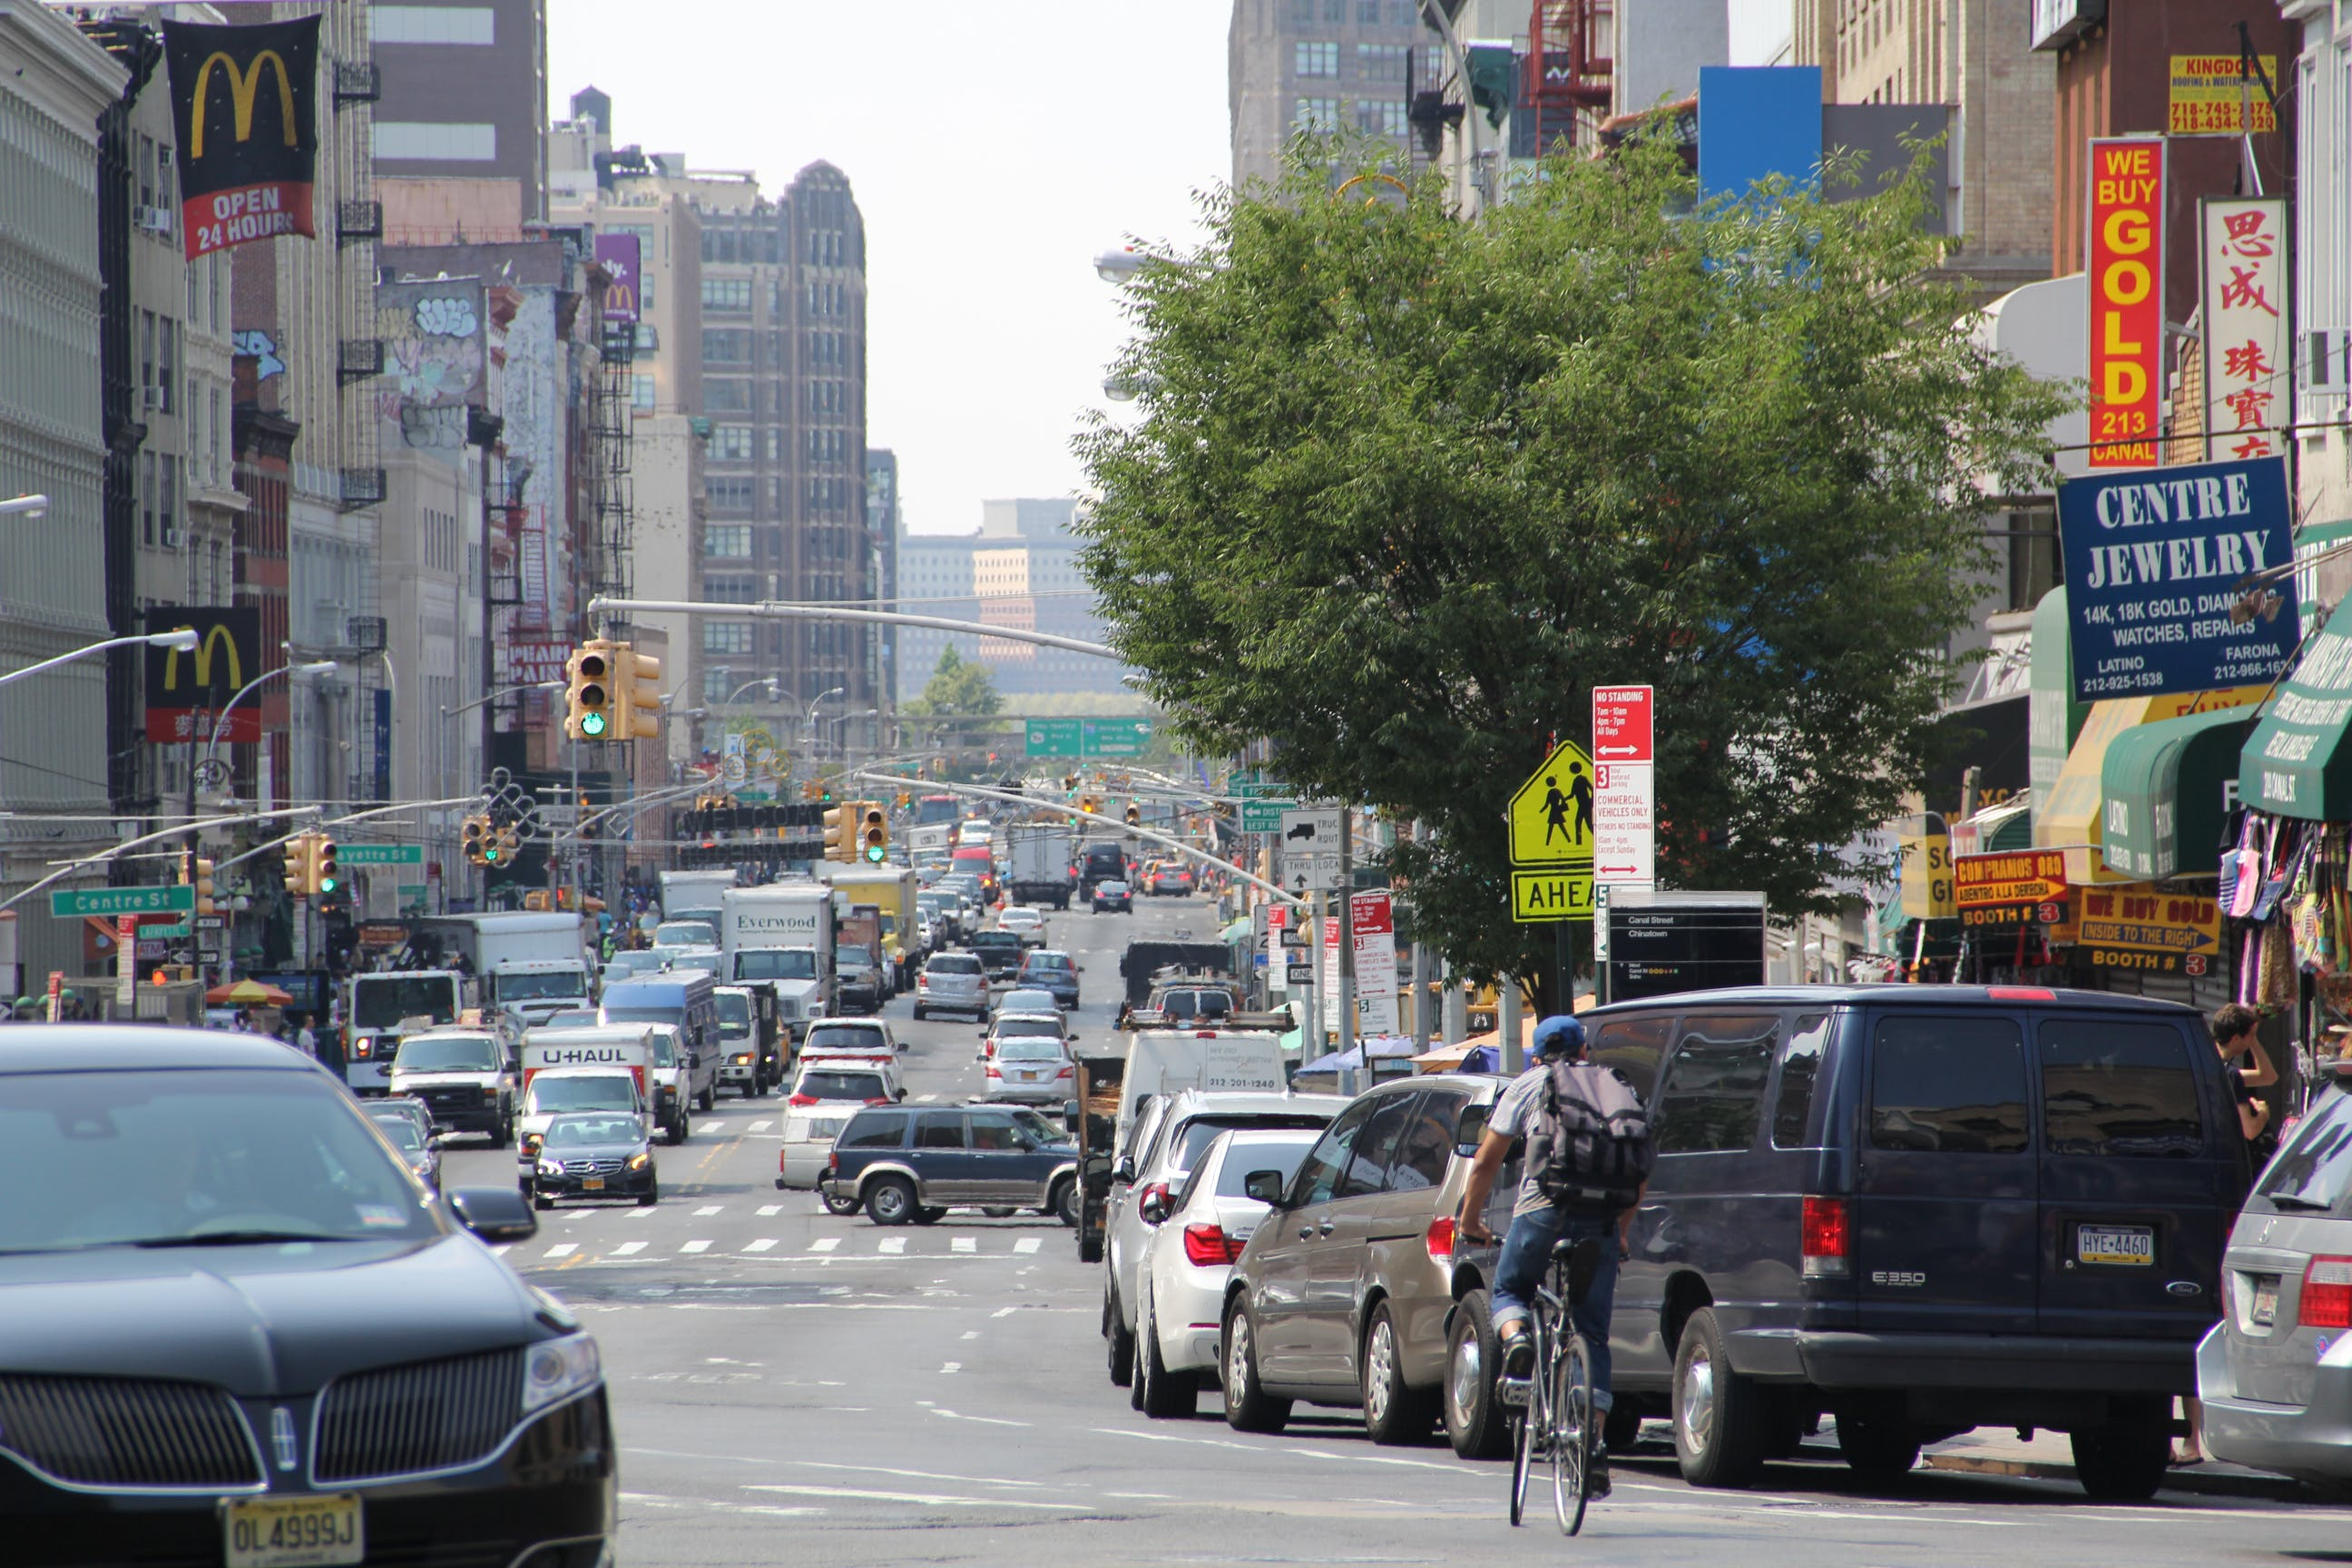 Free stock photo of city view, new york city, Sunny day in a city